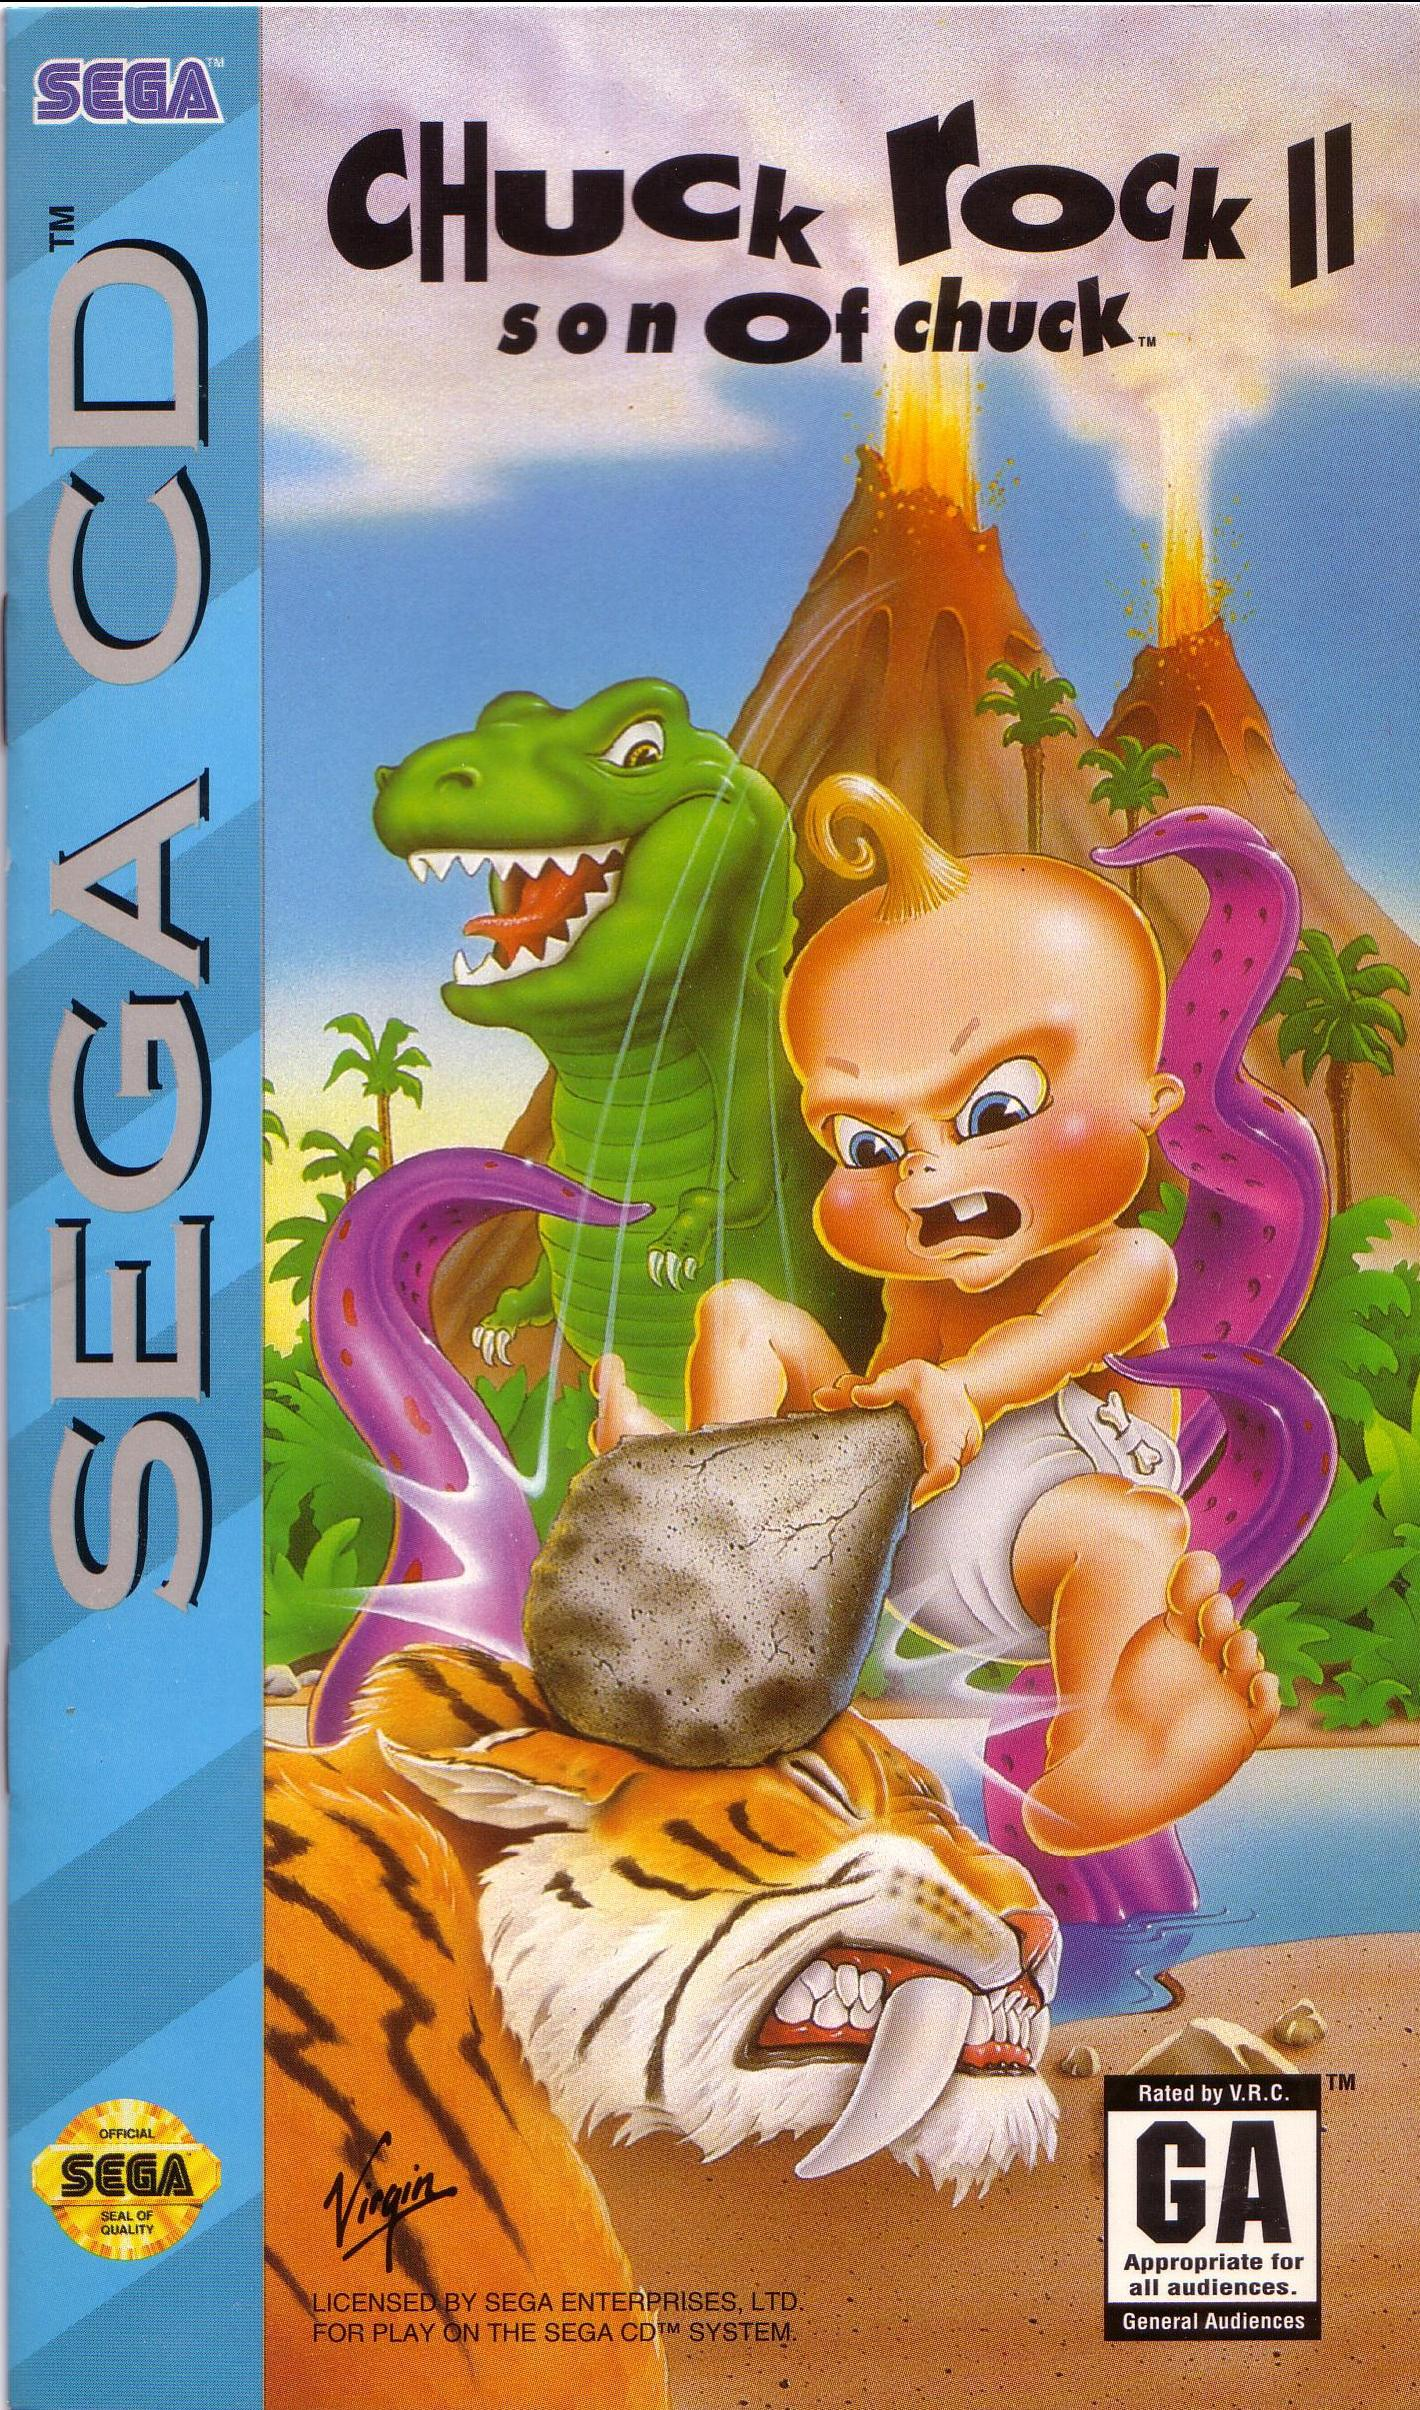 Chuck Rock 2 - Son of Chuck (U) Front Cover